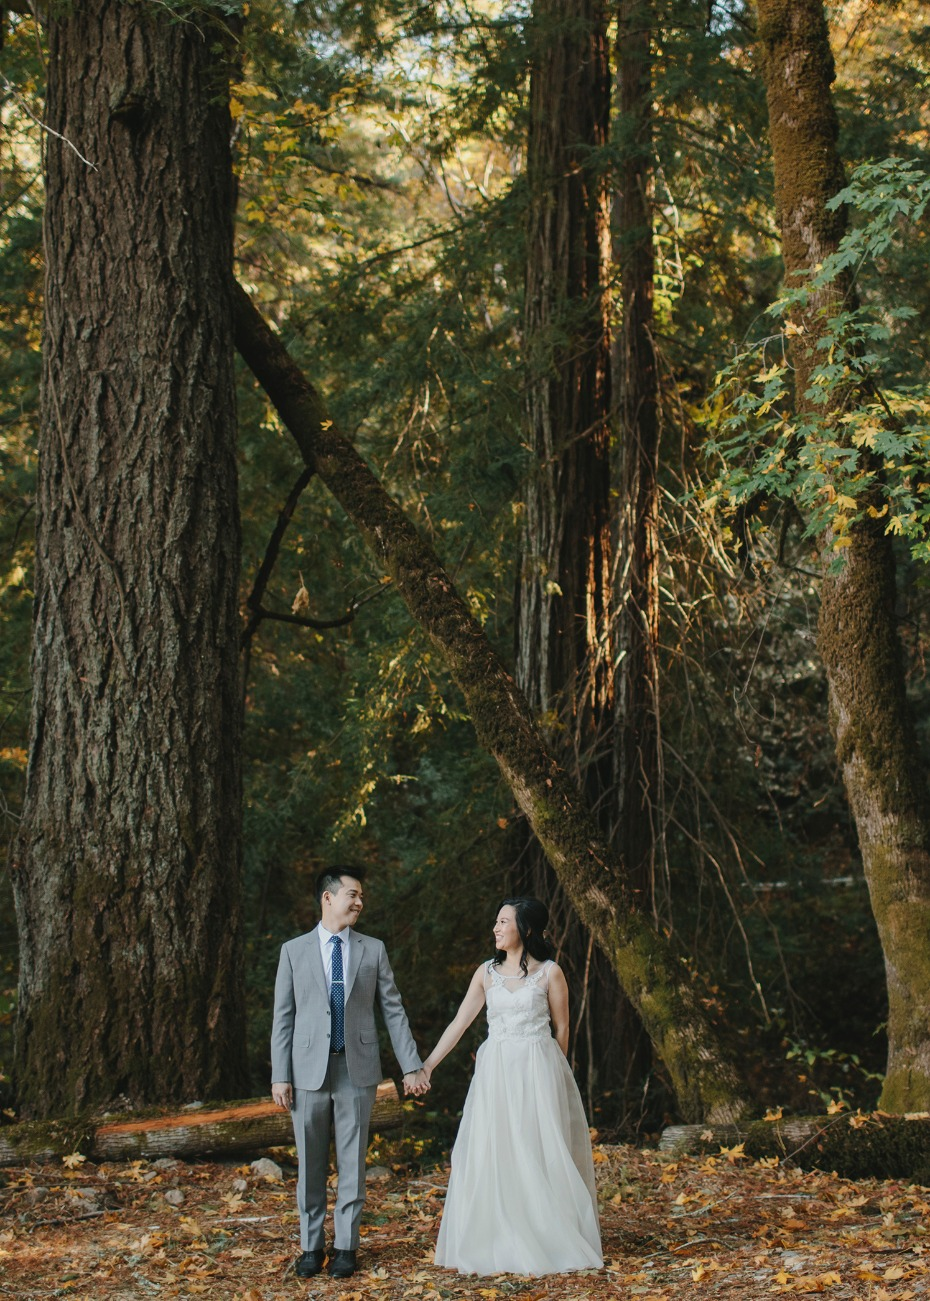 Take wedding pictures in the woods